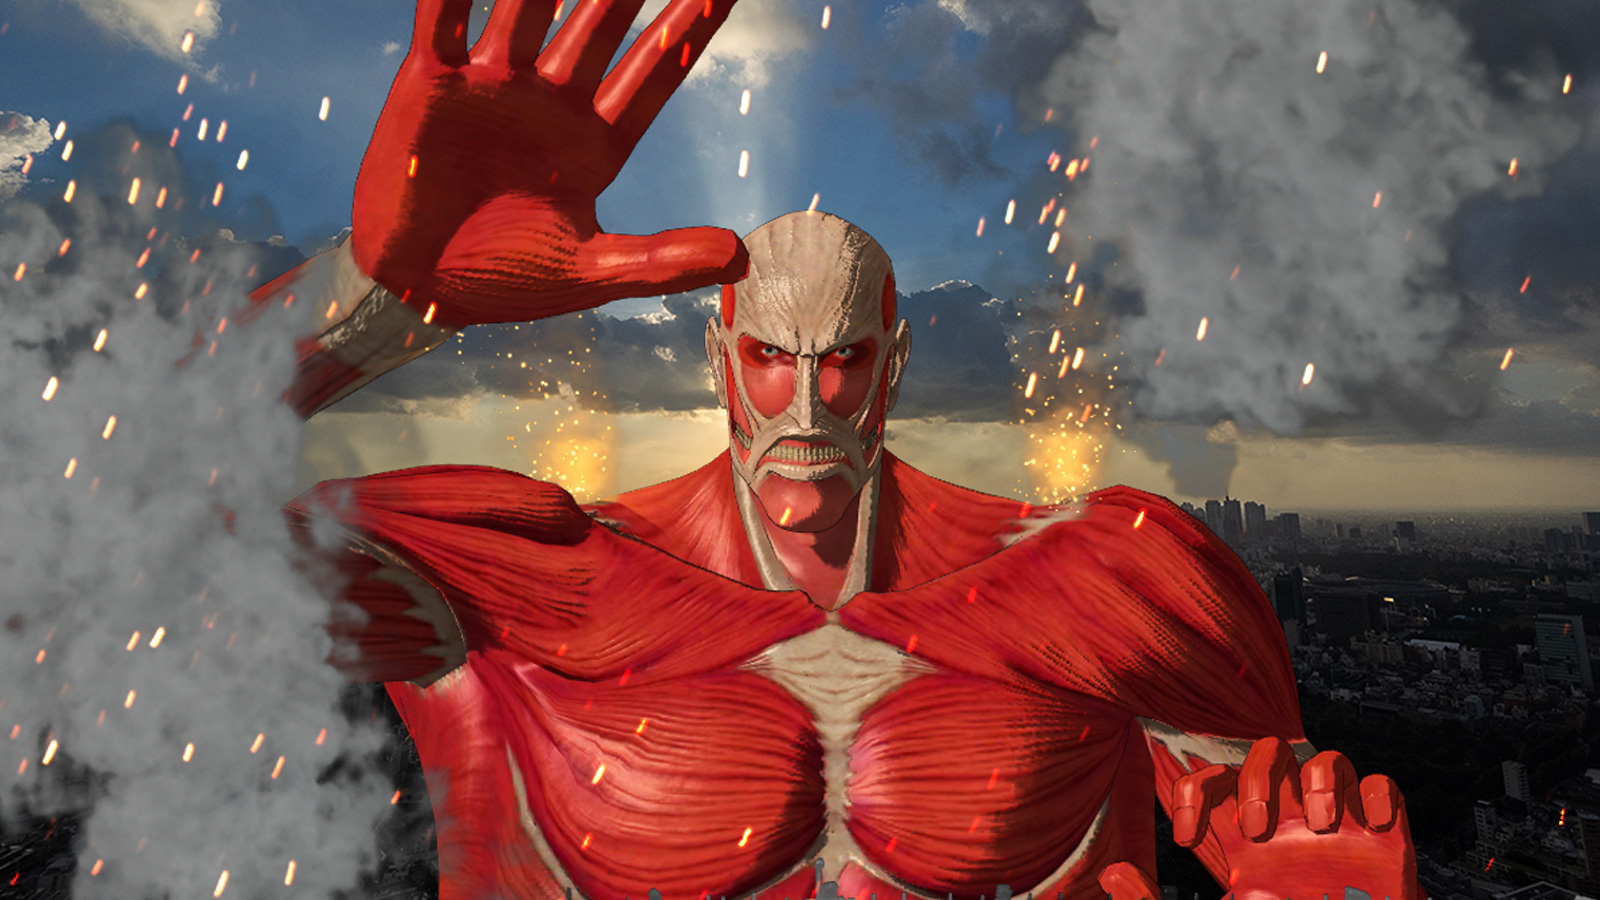 ATTACK ON TITAN FINAL EXHIBITION × SKY DECK-Appearance of The Colossal Titan